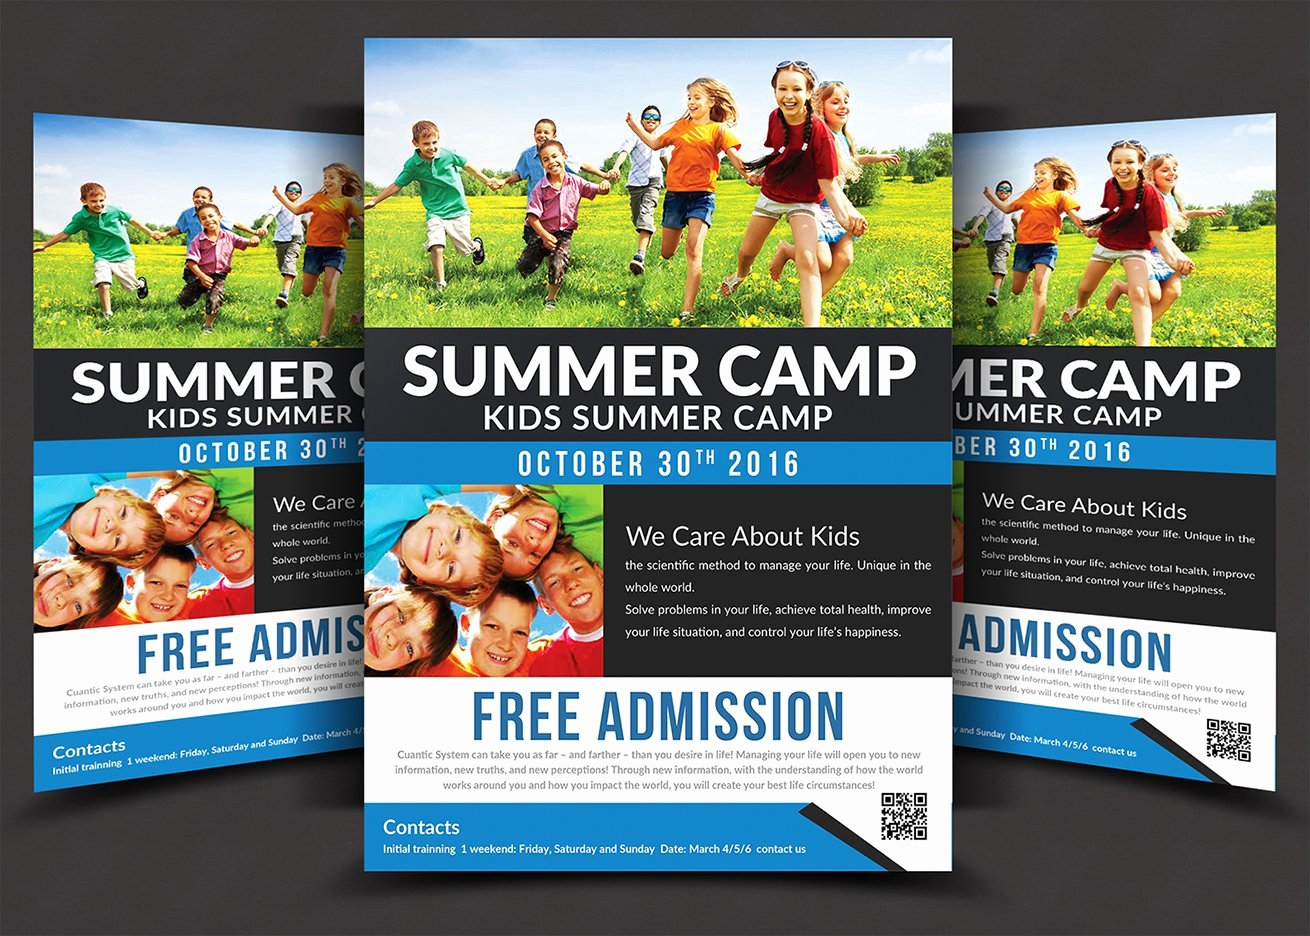 Summer Camp Flyer Templates Free Awesome Kids Summer Camp Flyer Templates Flyer Templates